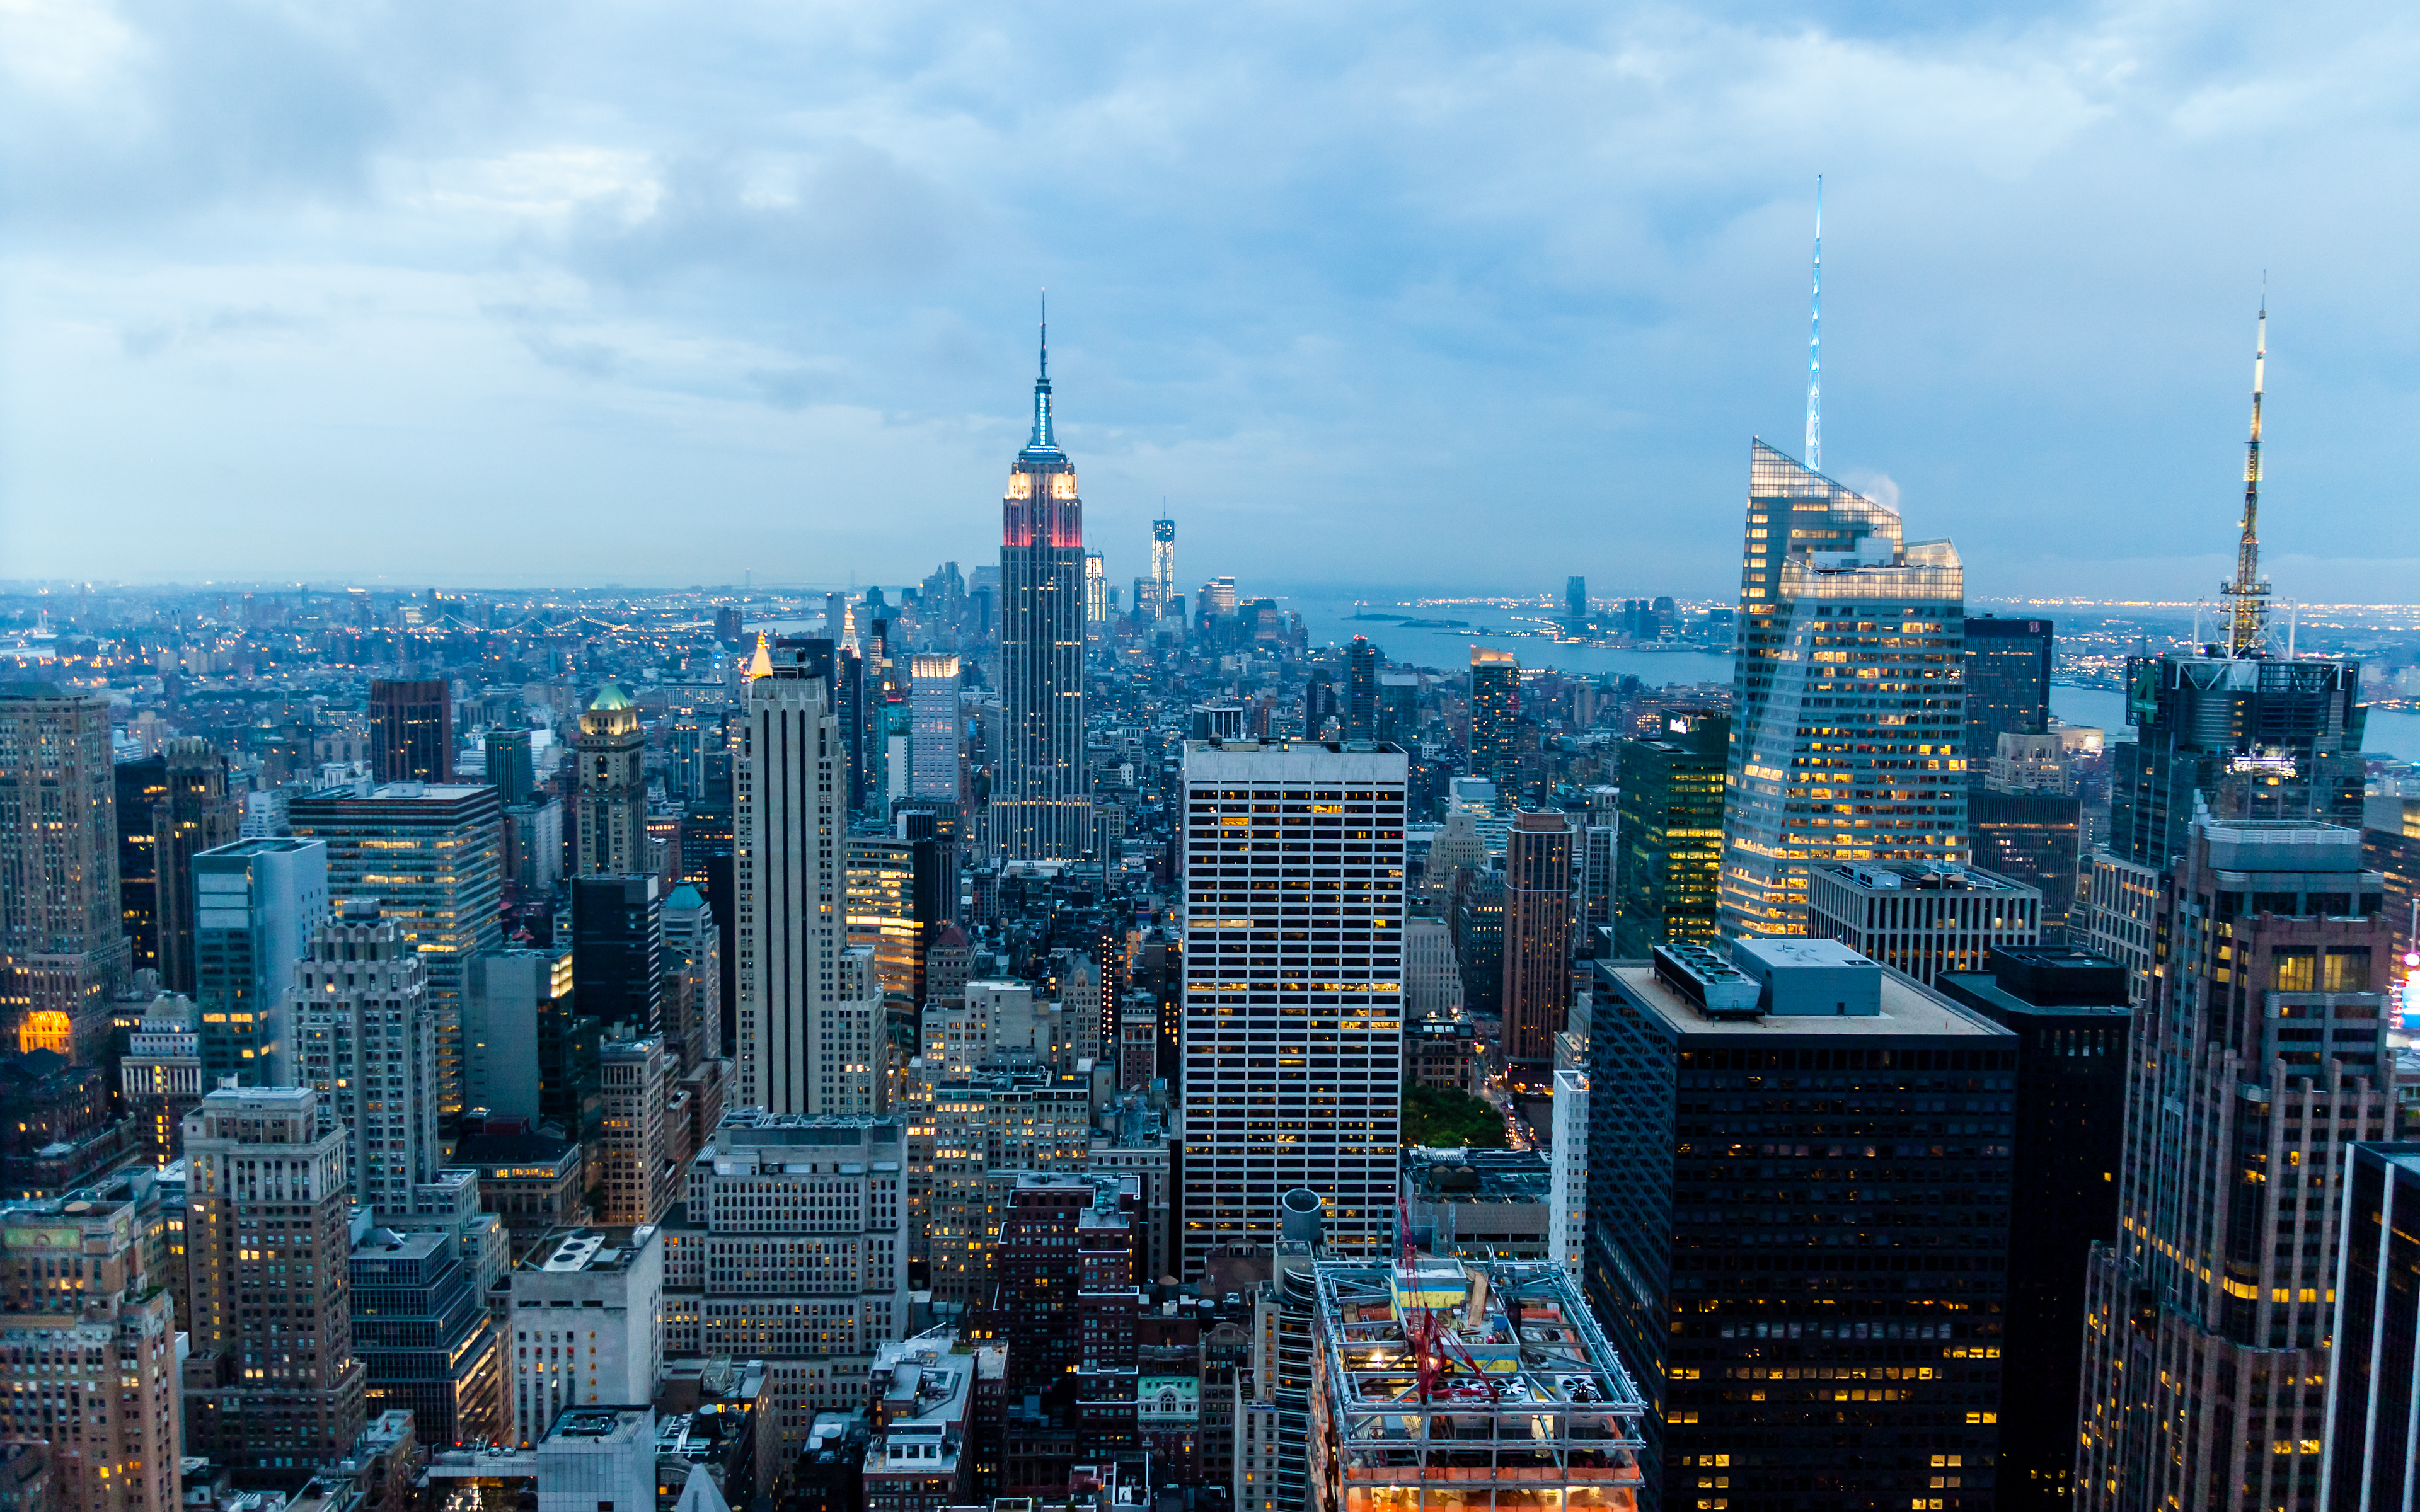 New York Skyscrapers View Wallpaper 3840x2400 px